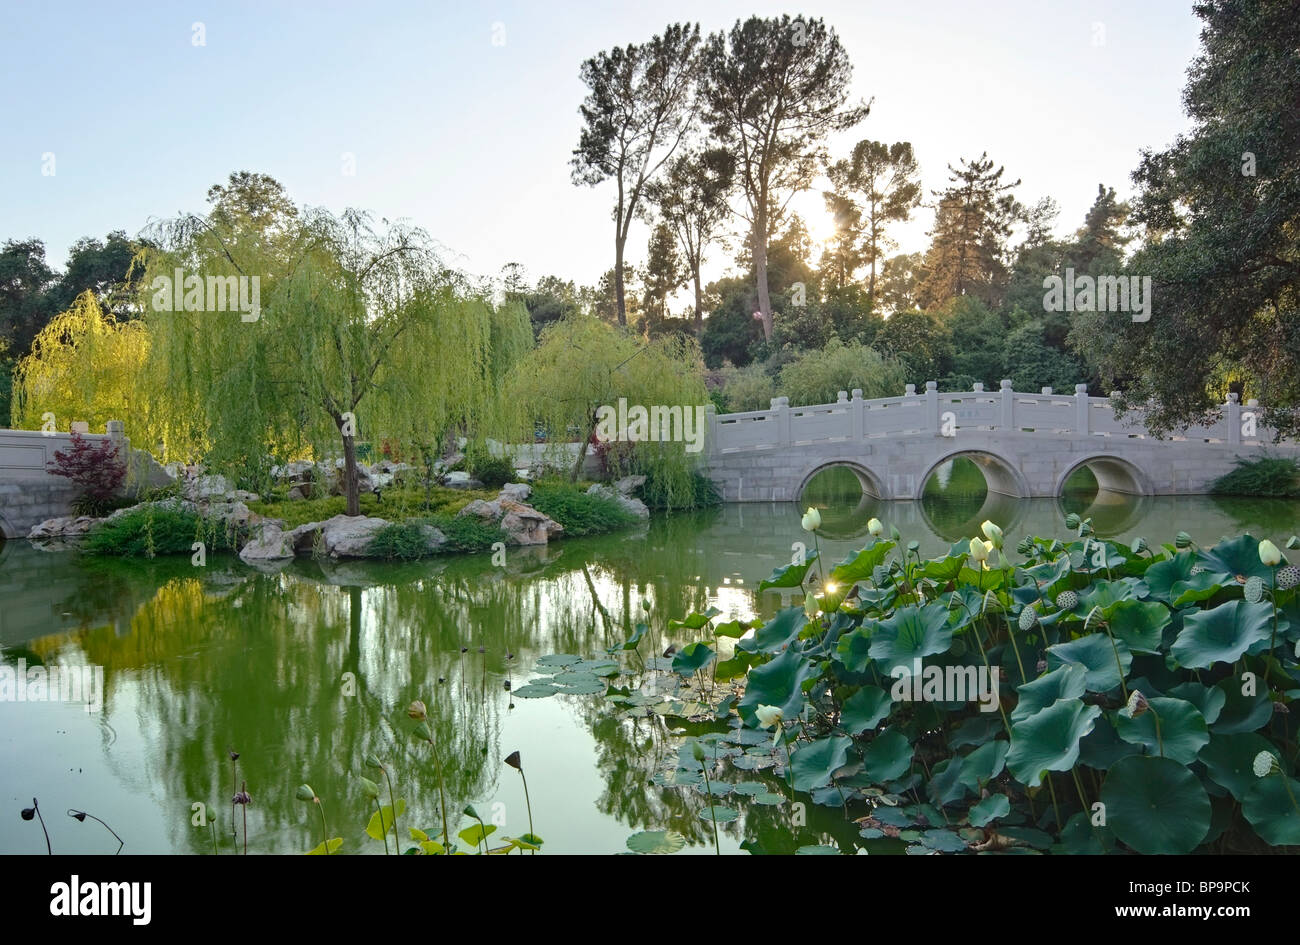 Beautiful Chinese Garden At The Huntington Library Stock Photo Royalty Free Image 30947971 Alamy